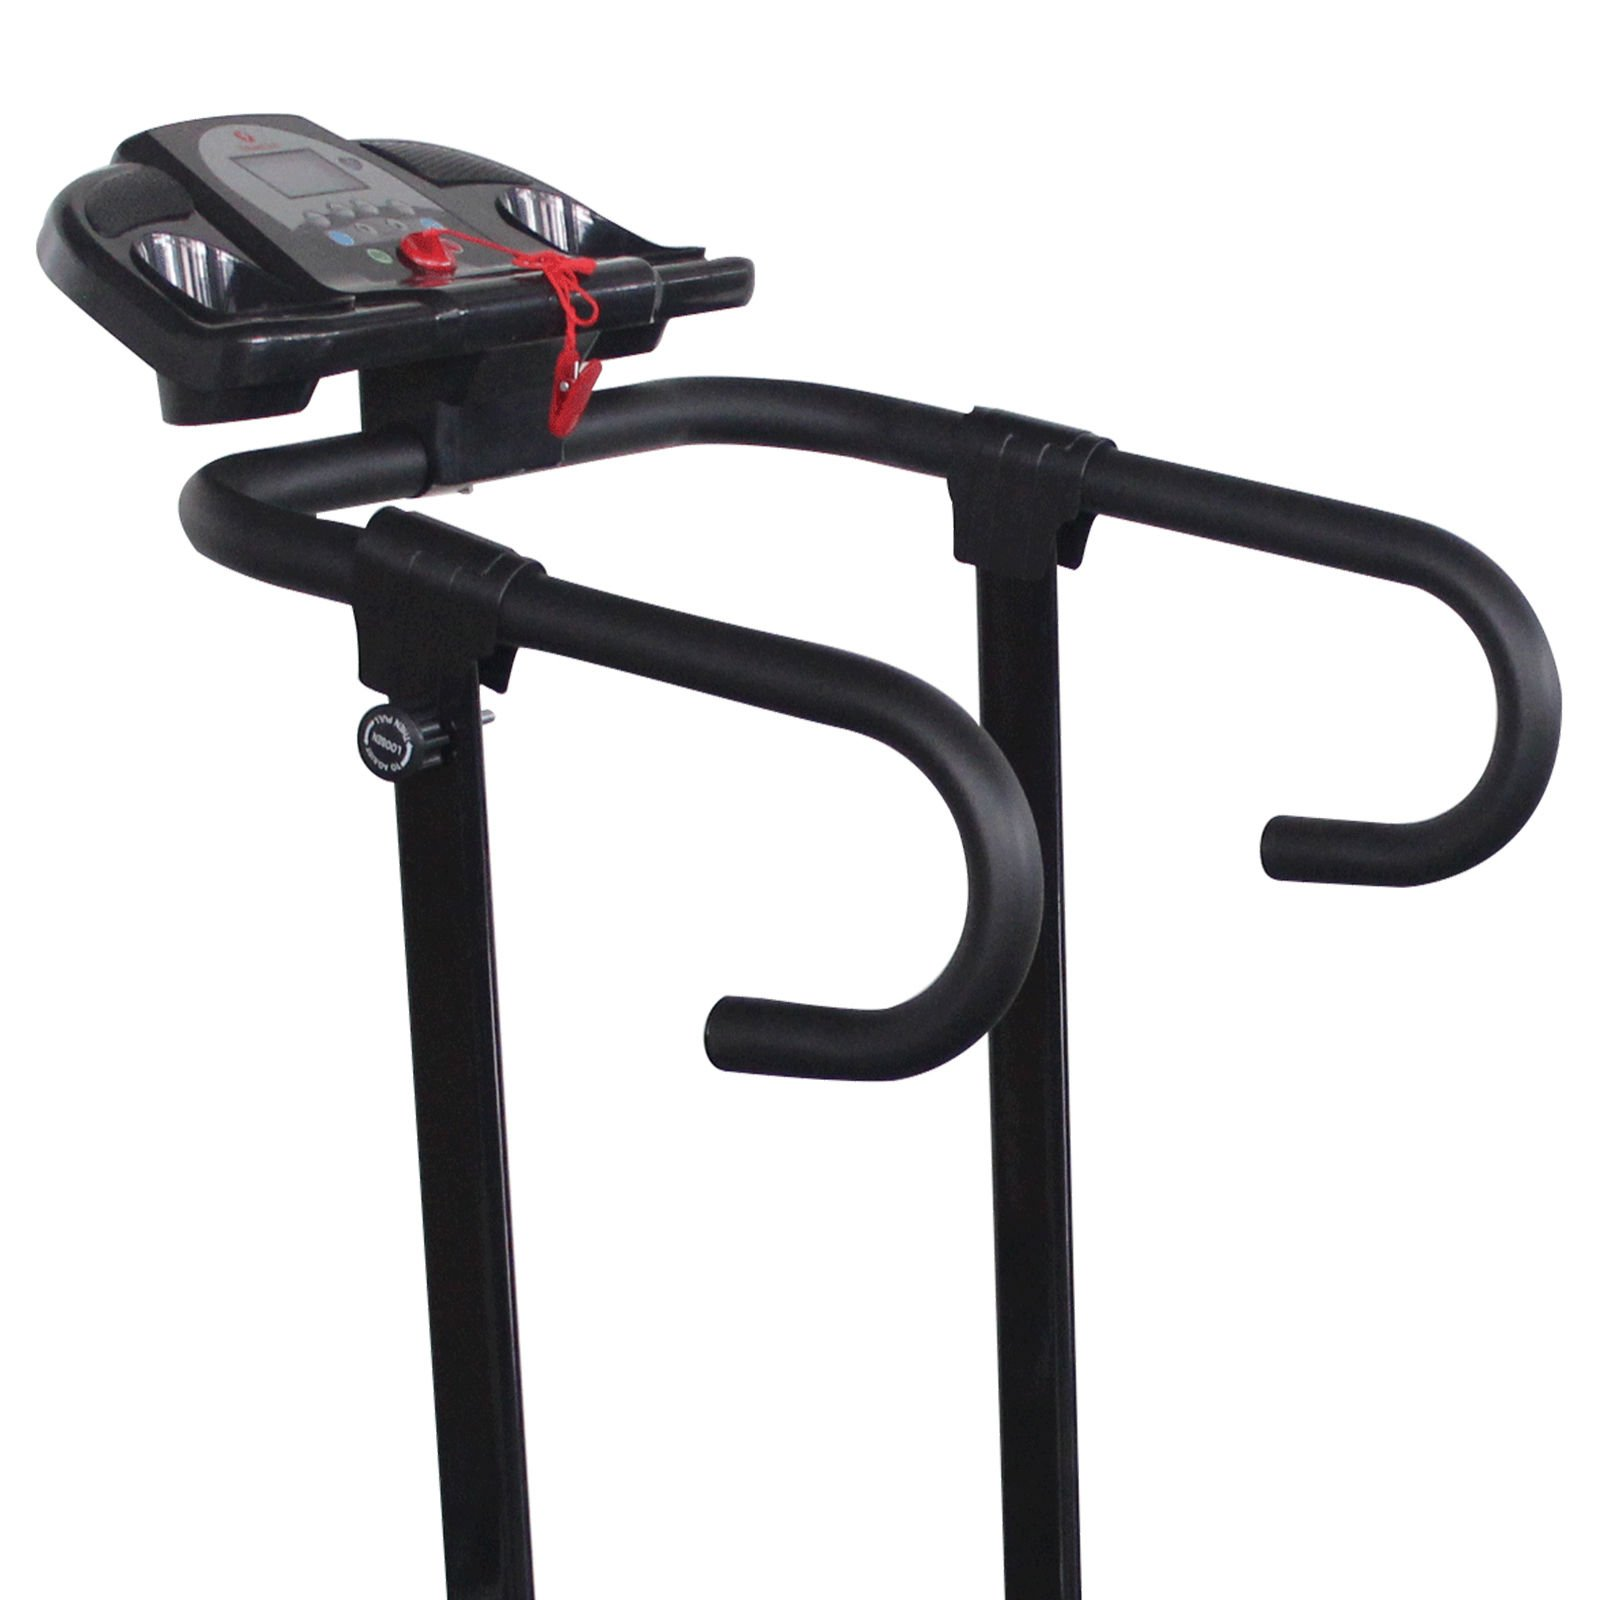 Portable 500W Folding Electric Motorized Treadmill Running Gym Fitness Machine by ZETY (Image #3)